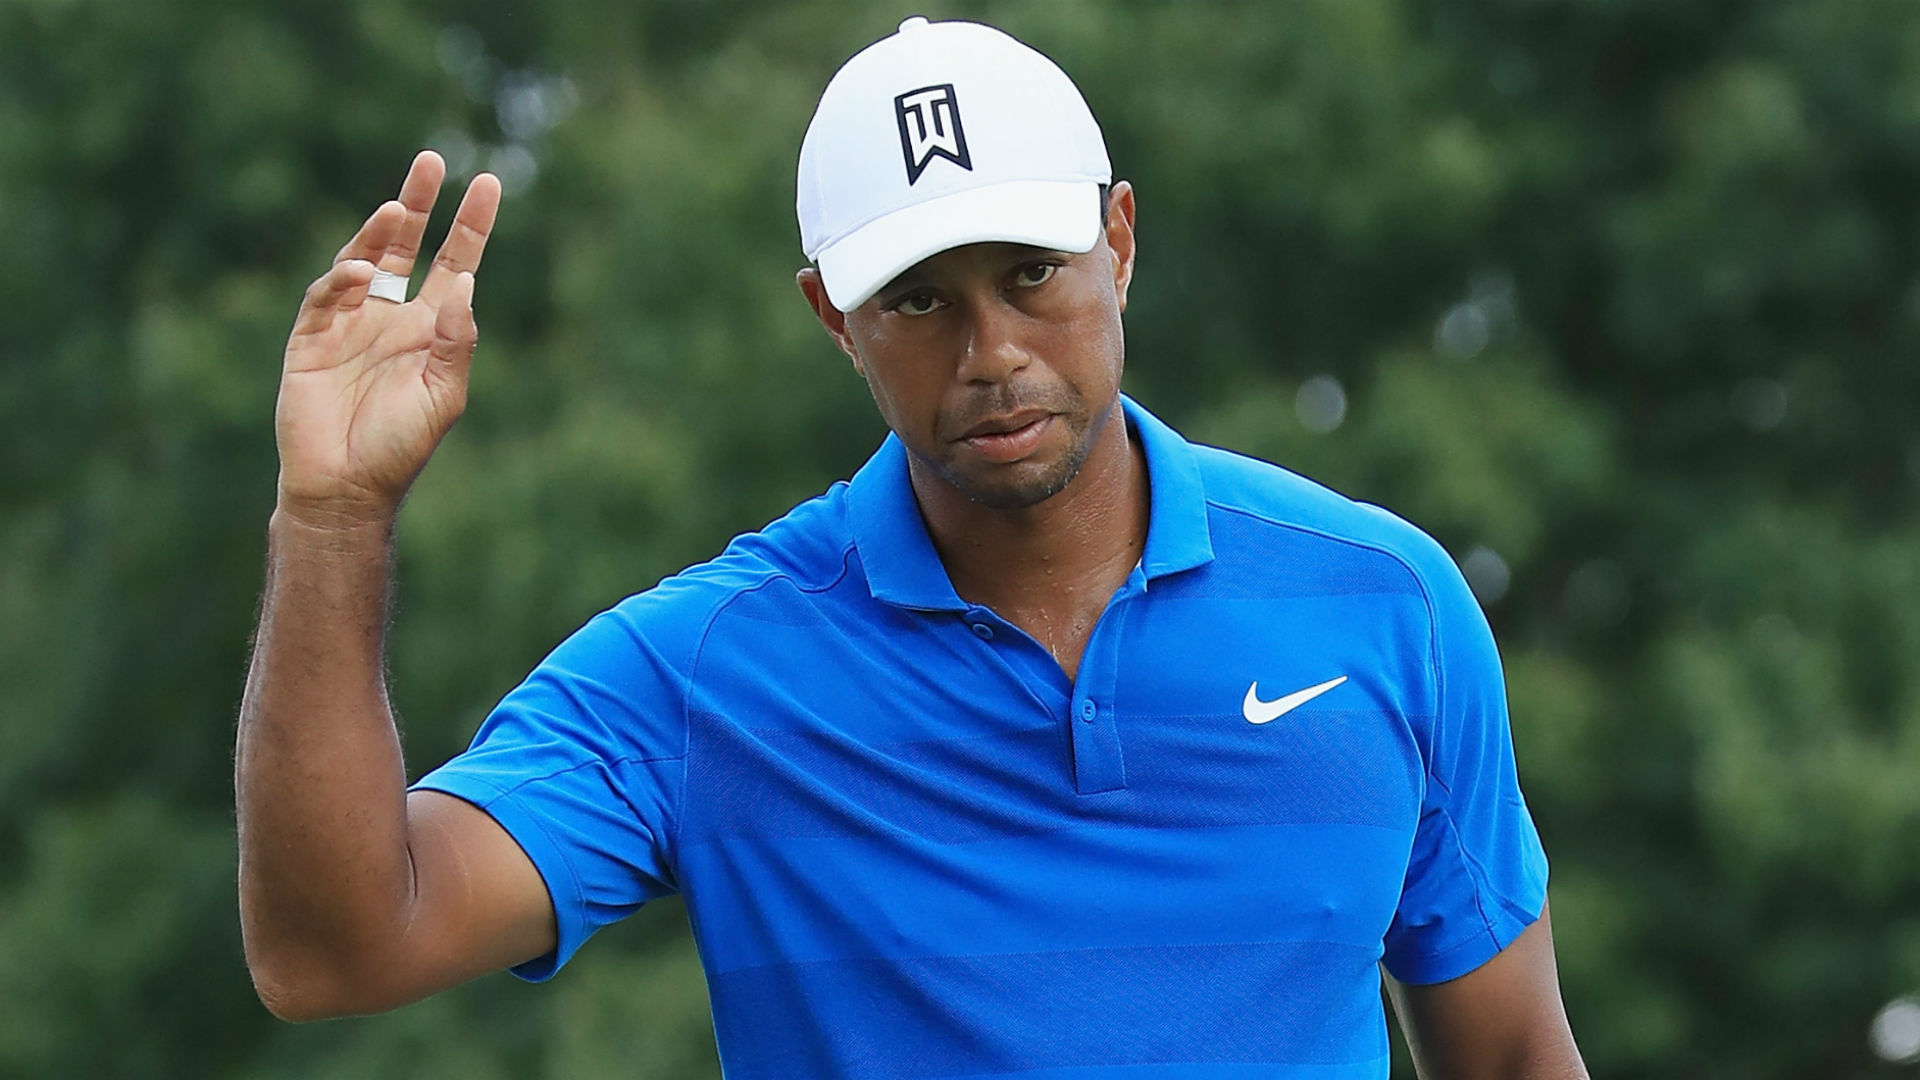 What has to happen for Tiger Woods to win the FedExCup?